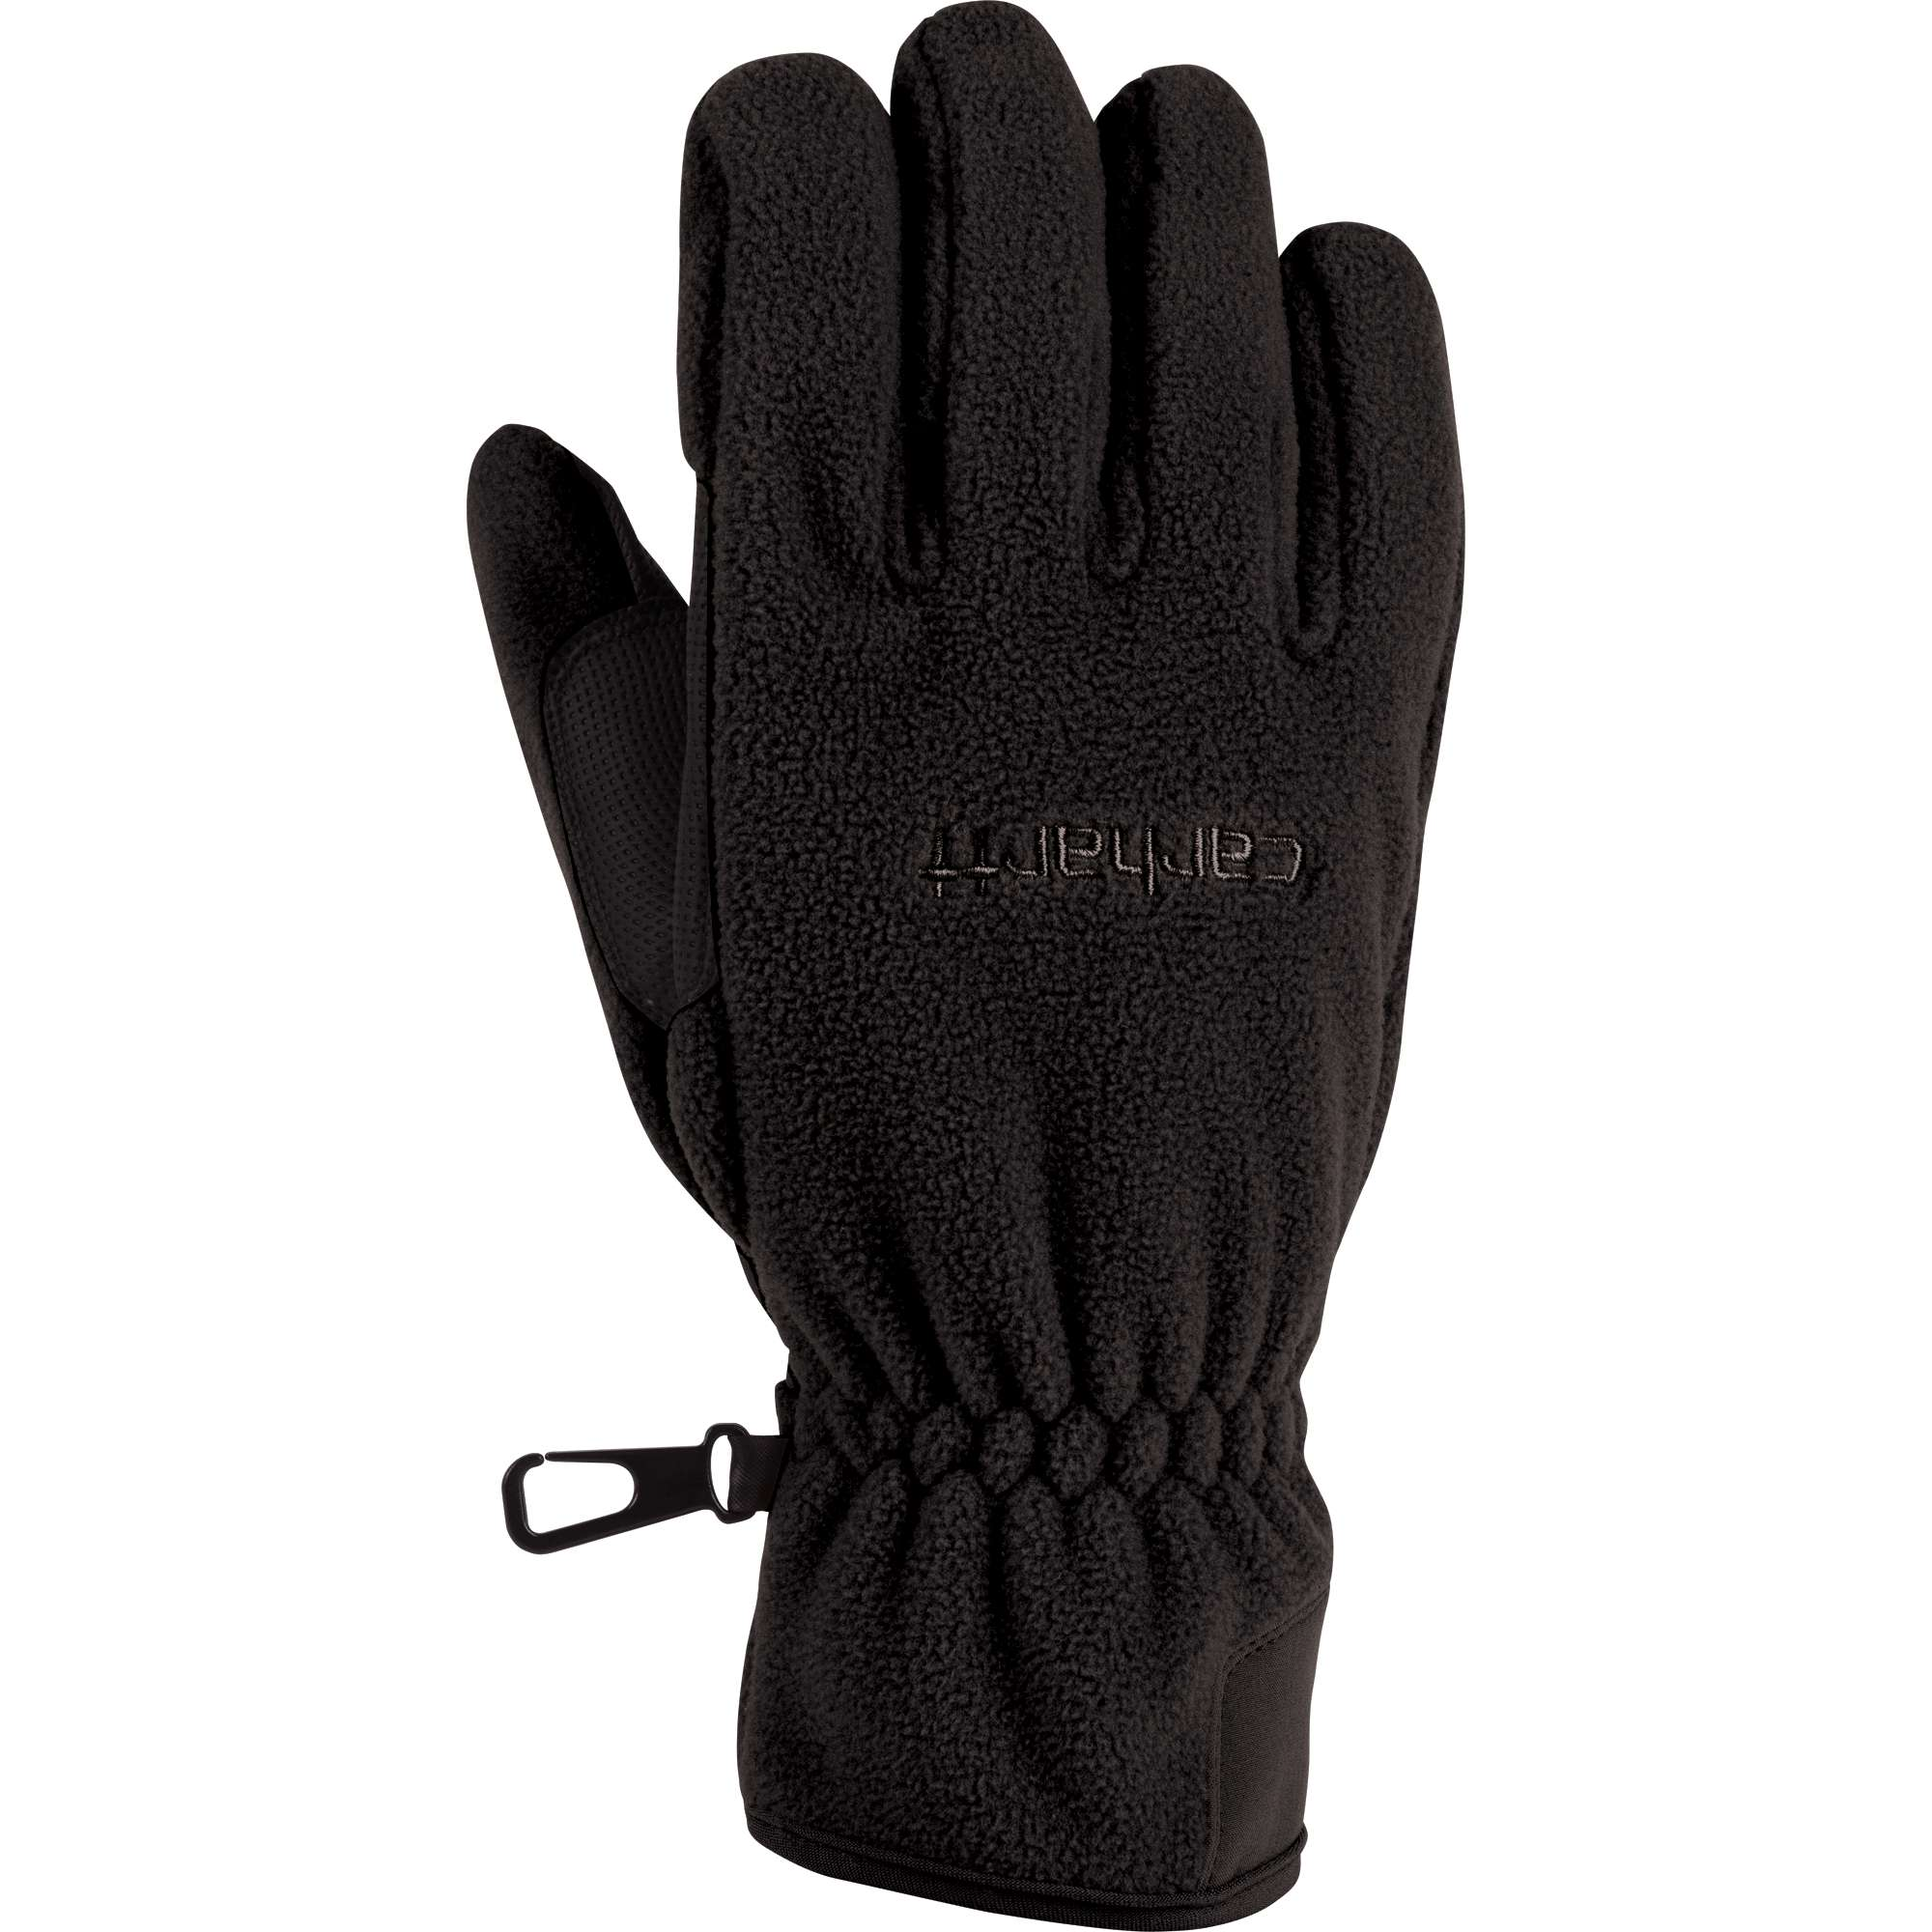 Carhartt Thermo Fleece Glove